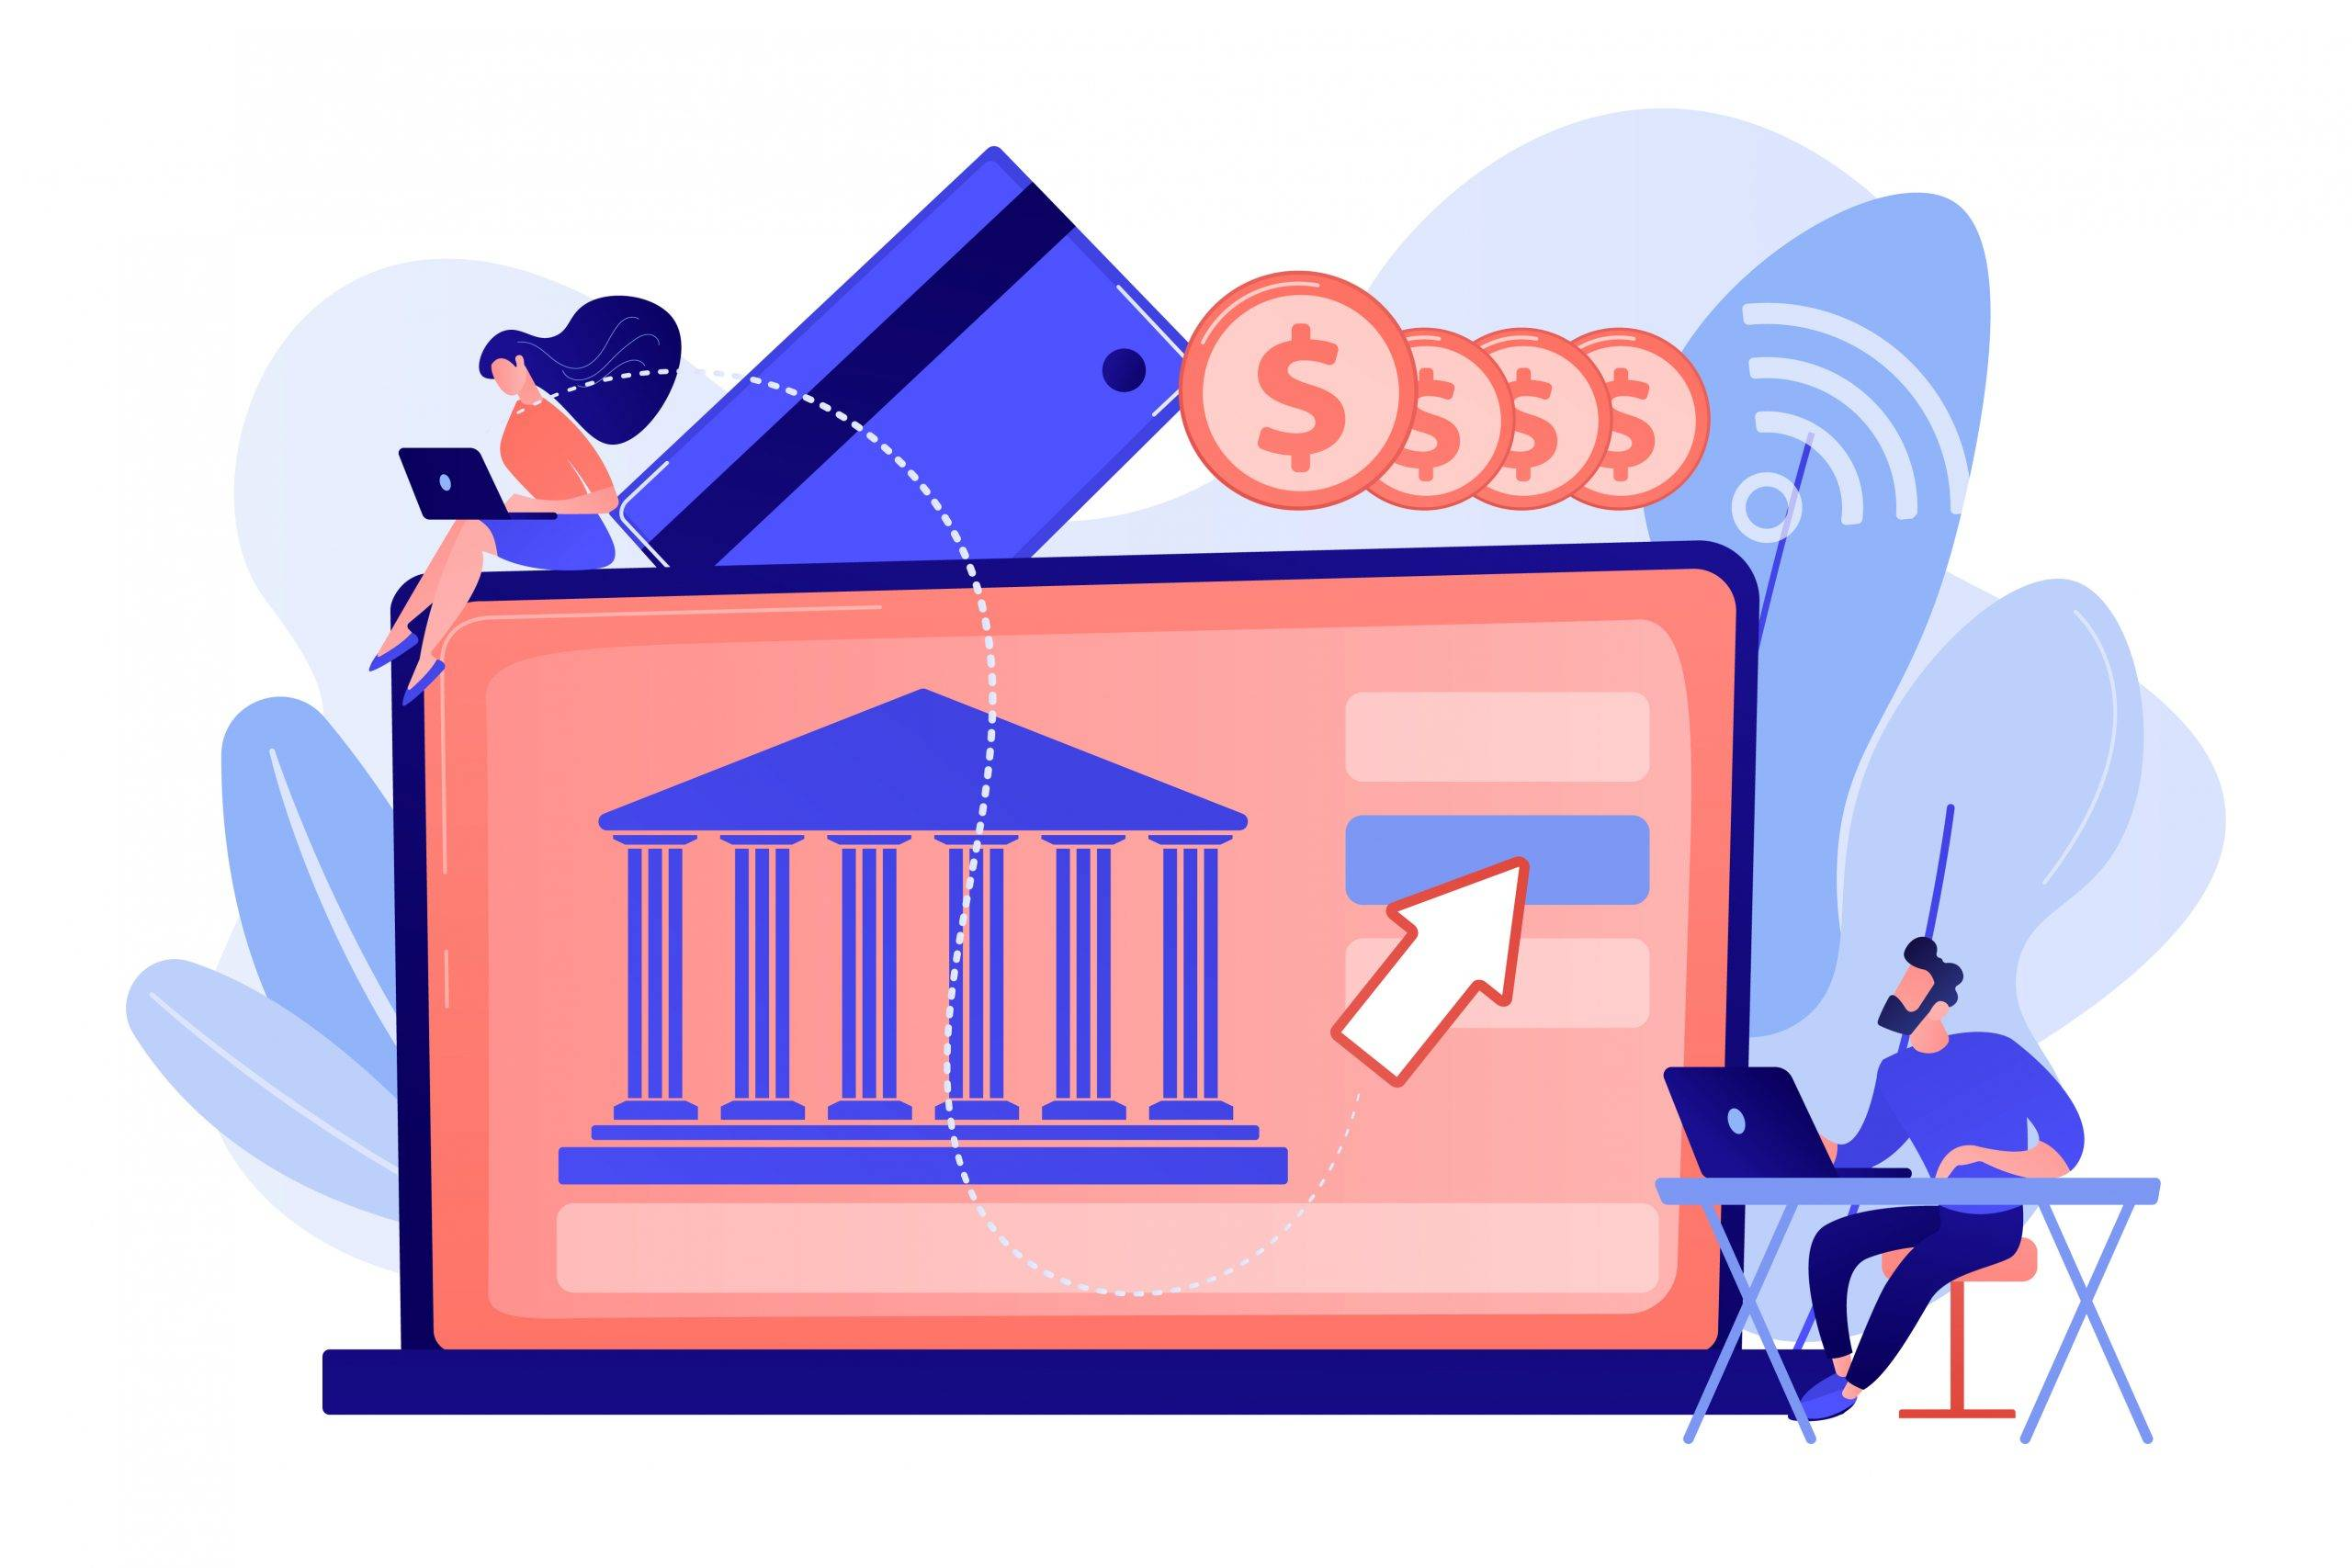 Evolving the Paradigm of Open Banking in the Region